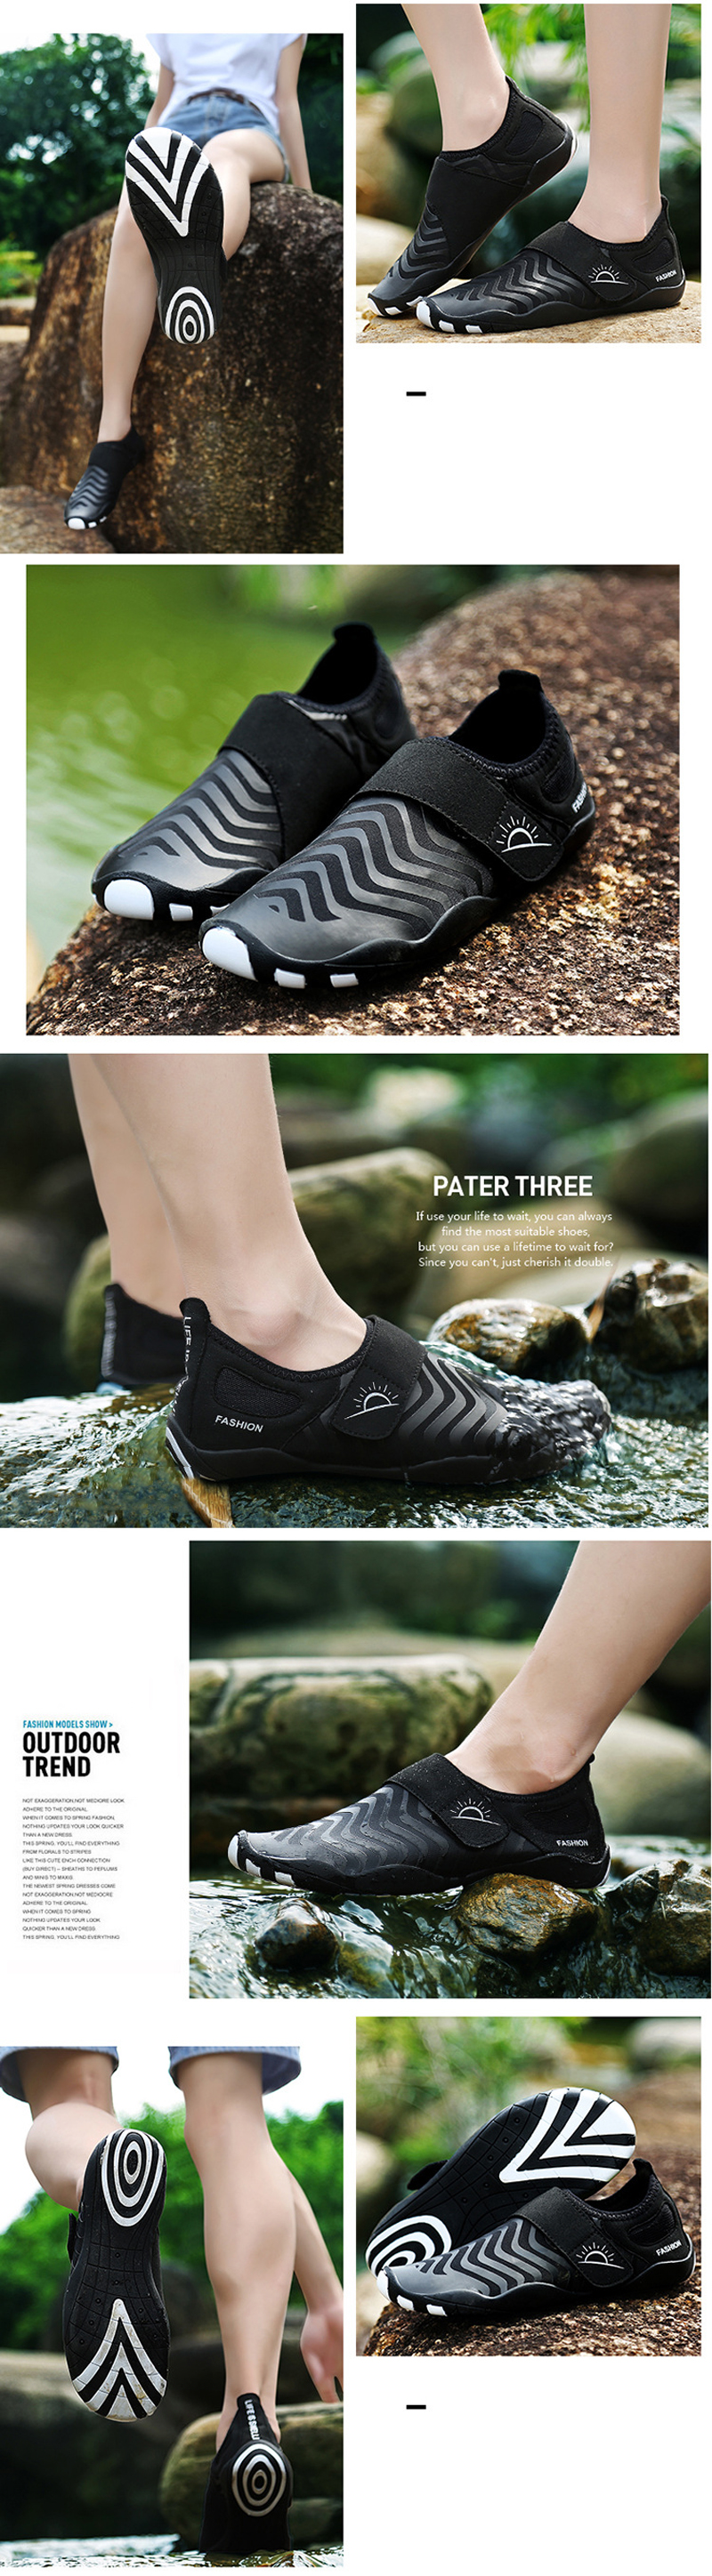 Outdoor Men Water Sneakers Shoes Breathable Lightweight Swimming Diving Wading Beach Shoes